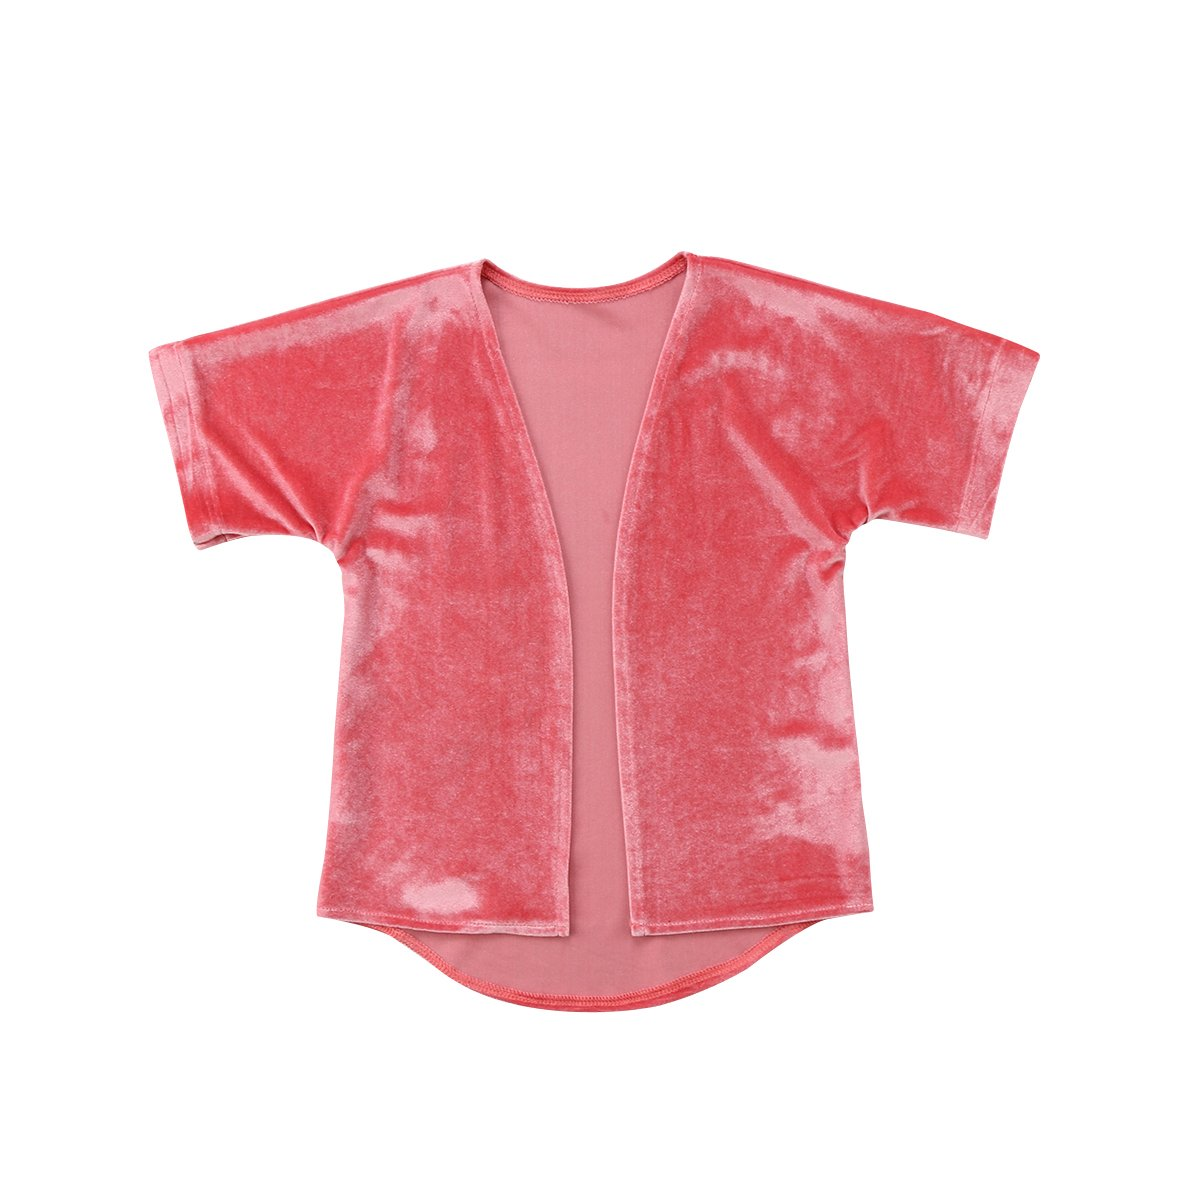 Binwwede Little Girl's Short-Sleeved Jacket Pink Gold Velvet Cardigan unbuttoned Coat (Pink, 90cm)